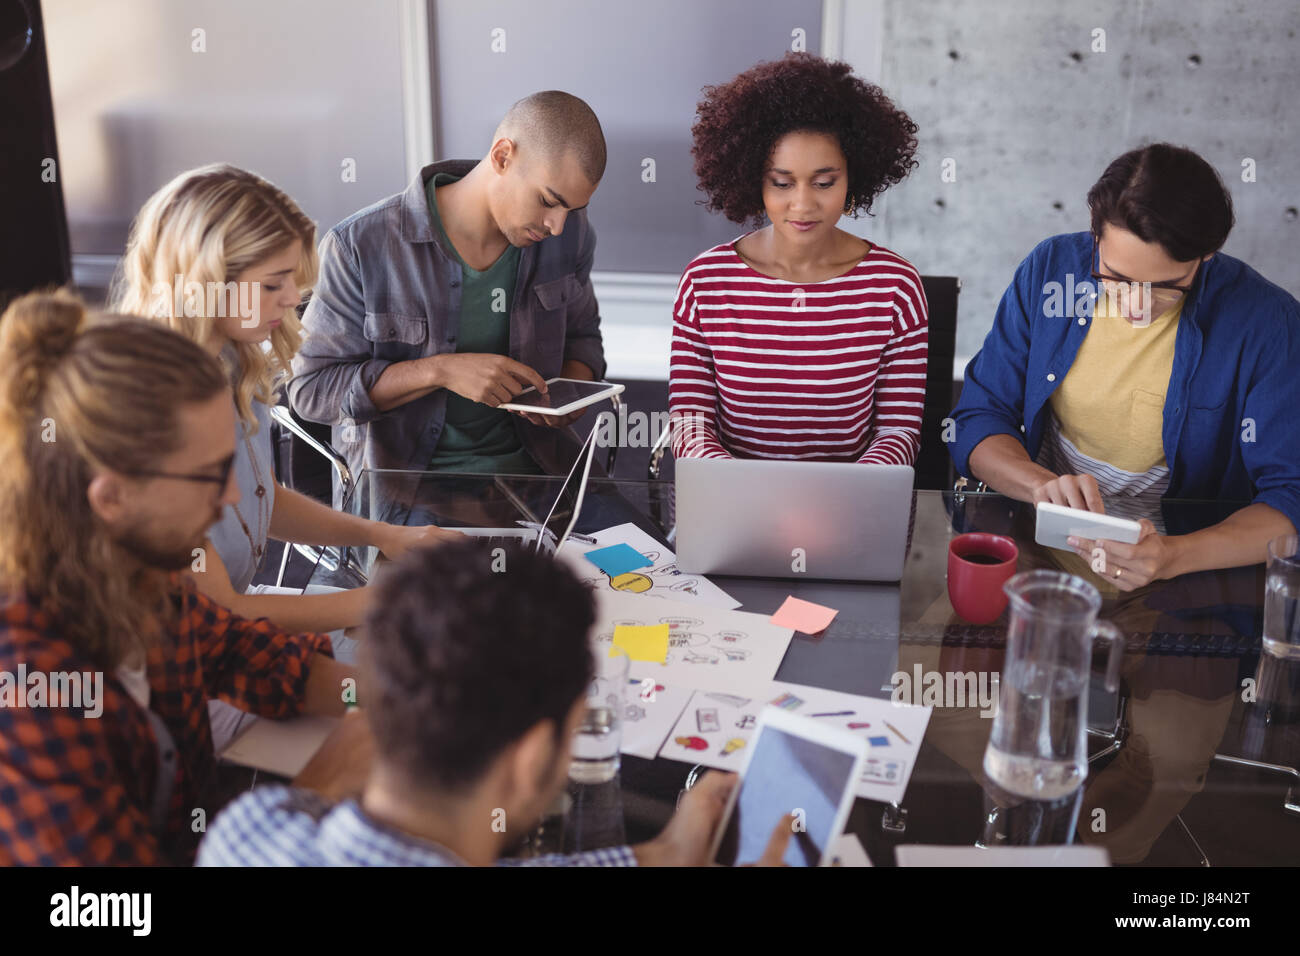 High angle view of business team working together at creative office desk - Stock Image